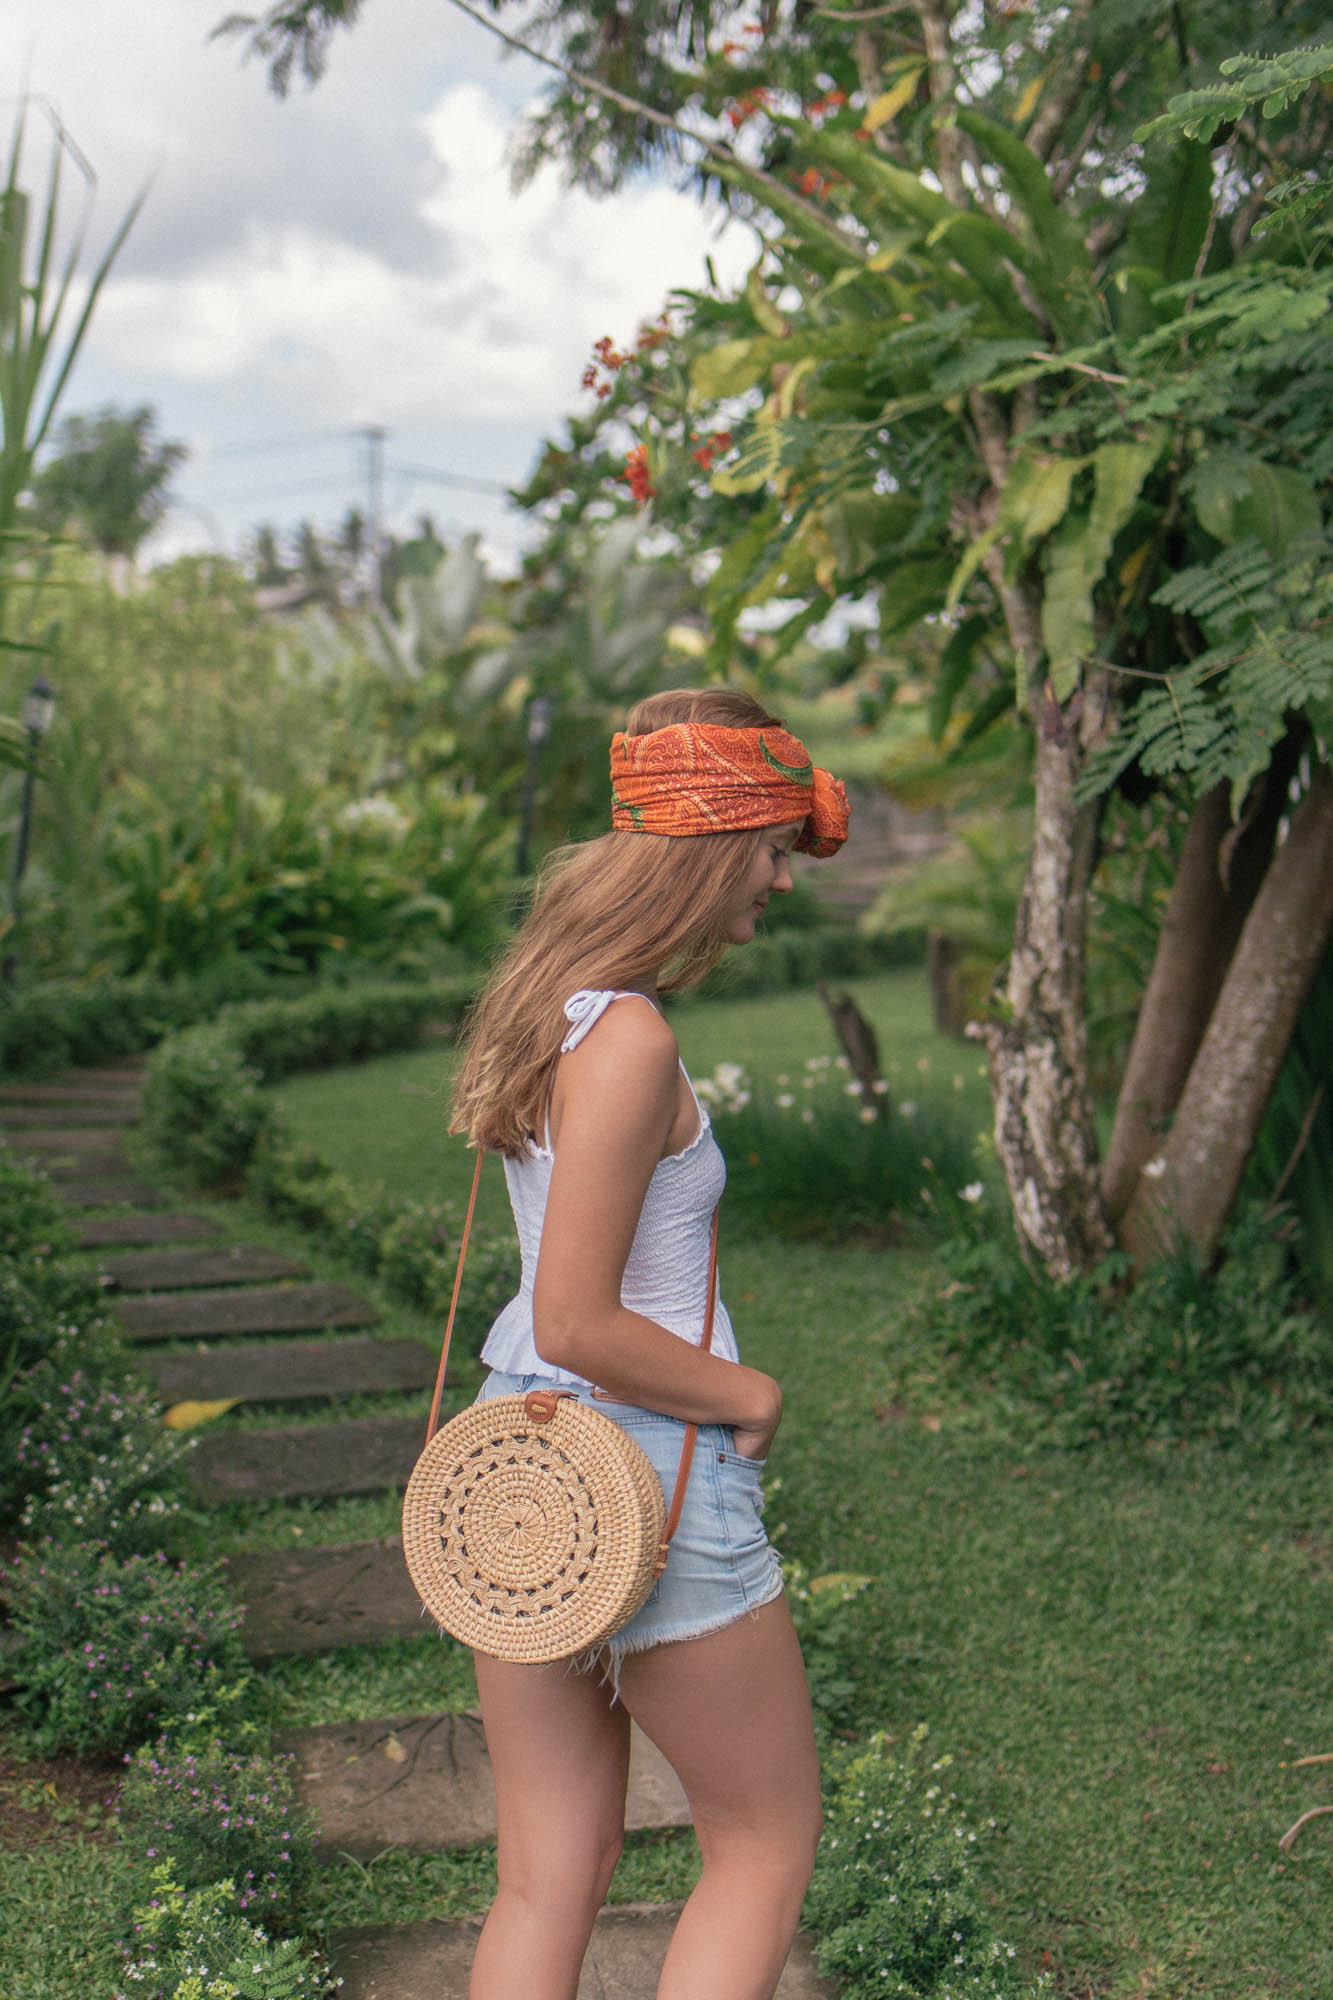 My Favorite Trend from Bali